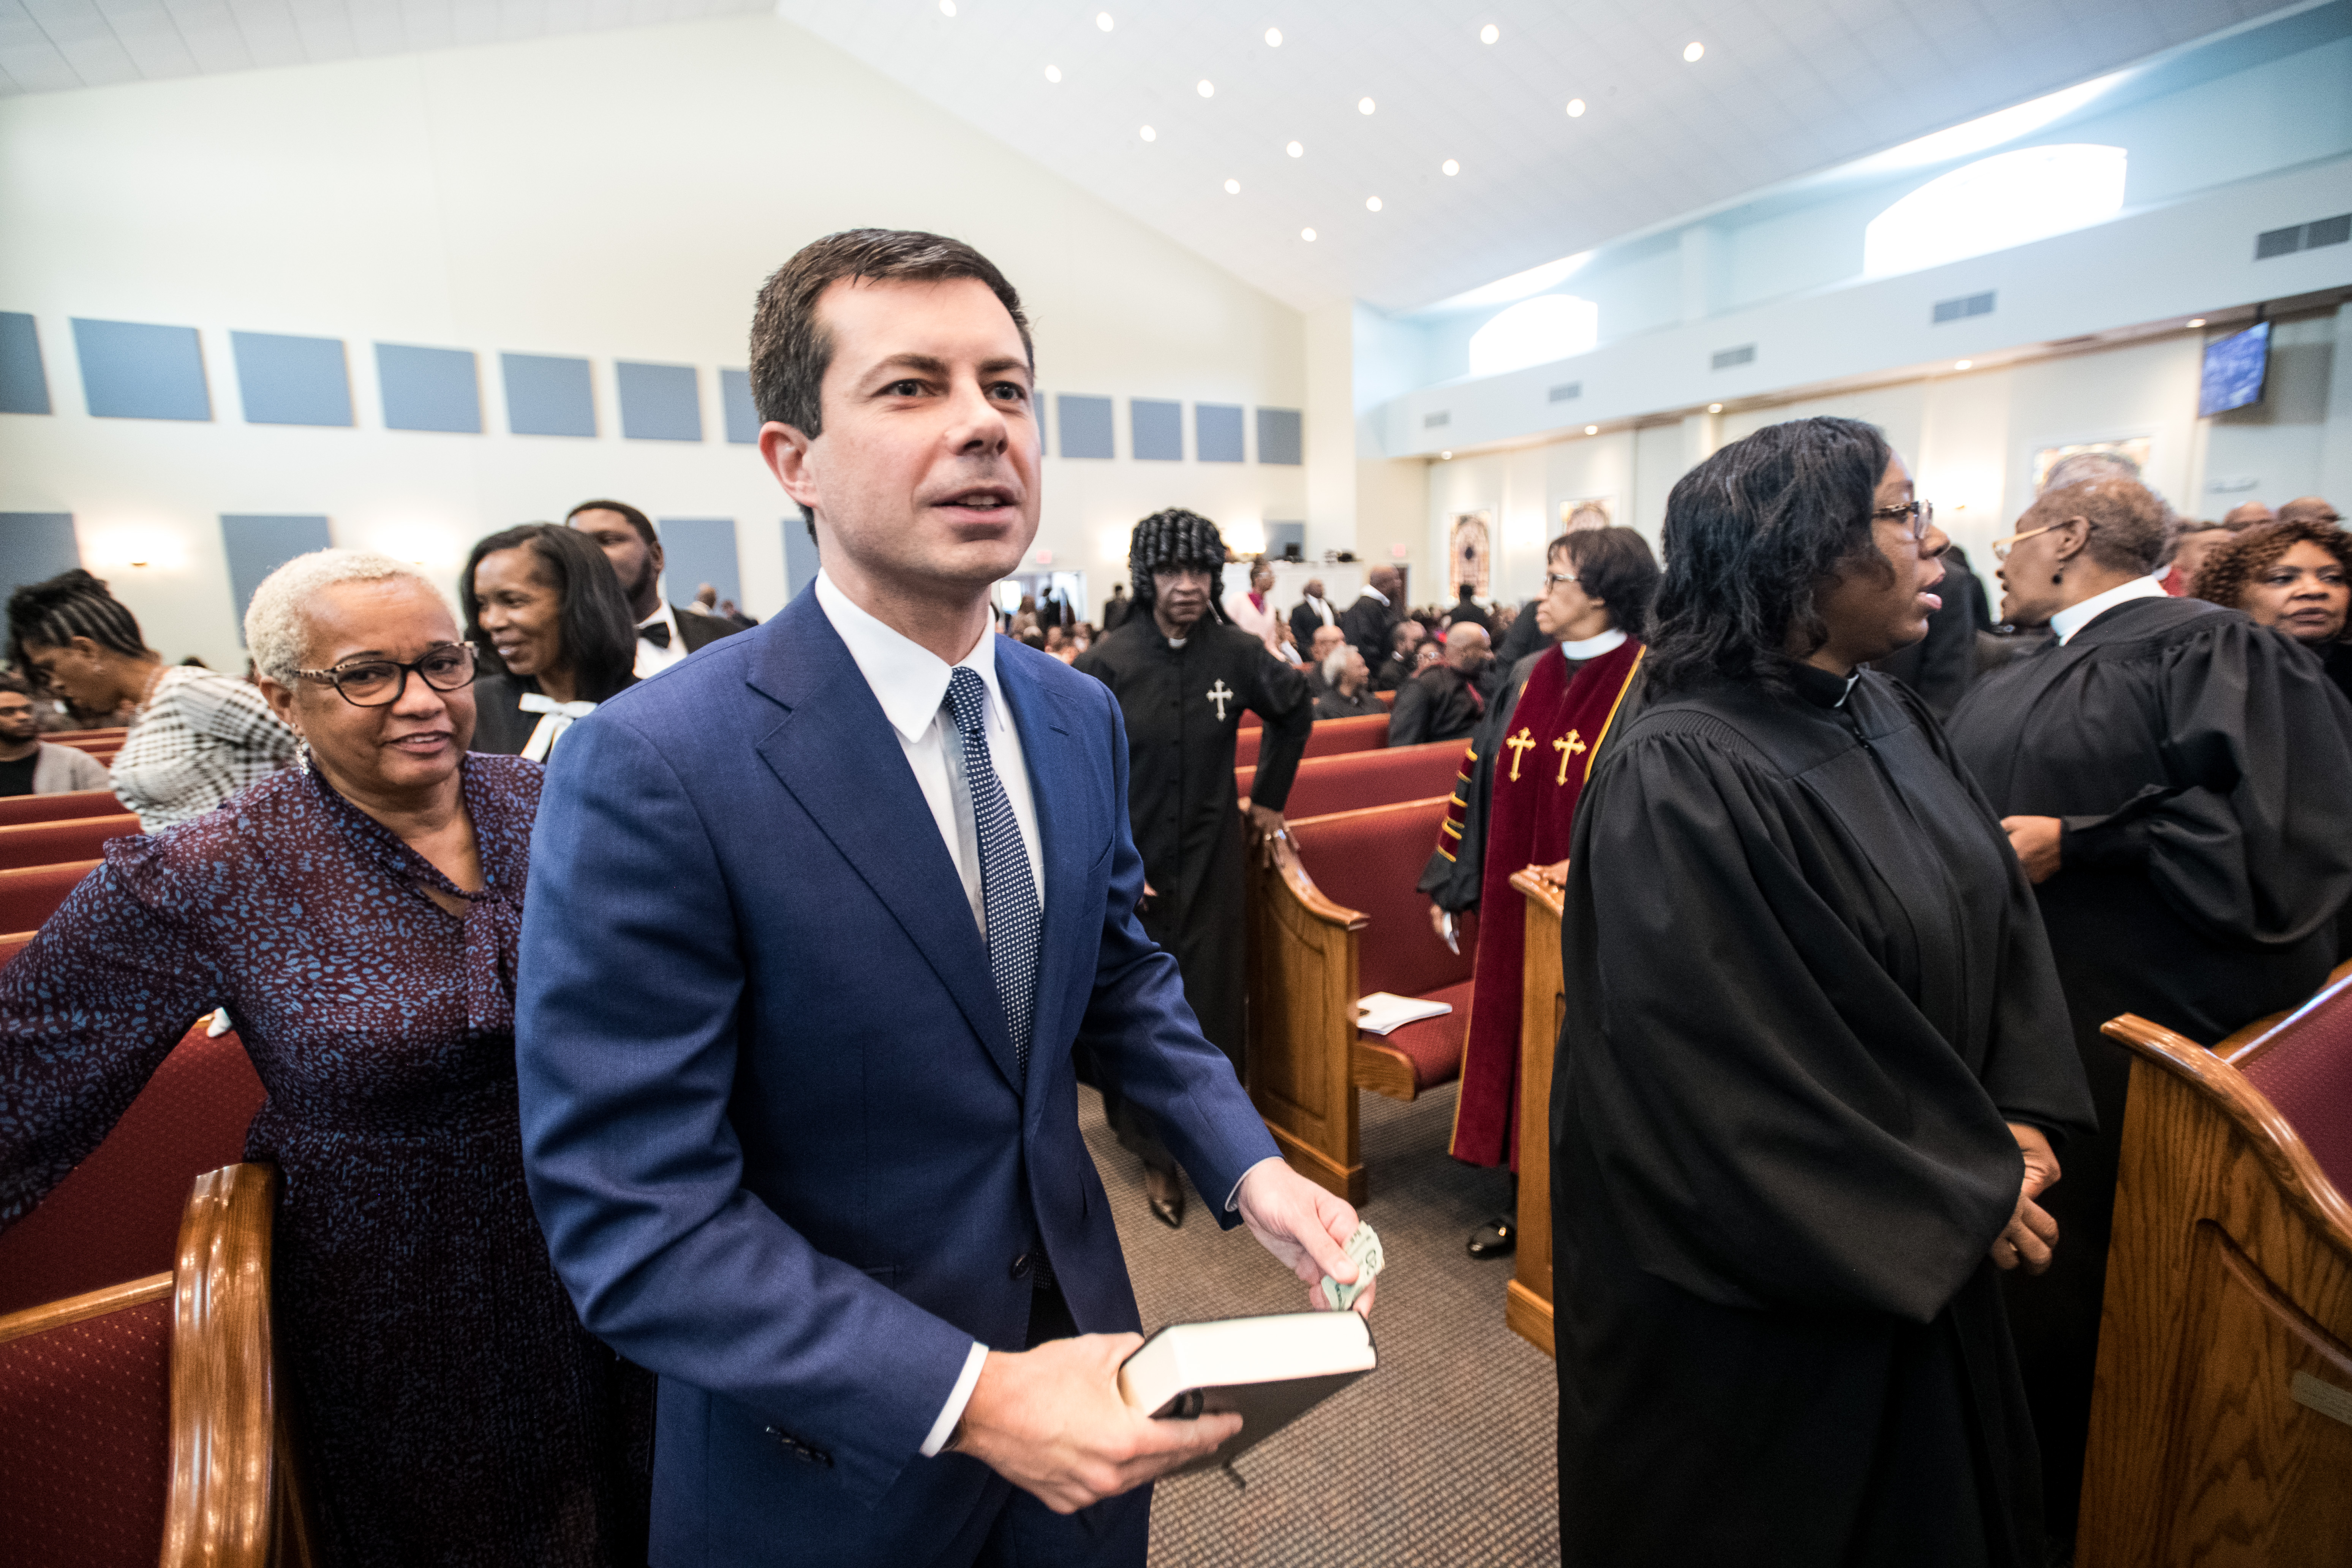 Democratic presidential candidate, South Bend, Indiana Mayor Pete Buttigieg exits a church pew during Sunday service at the Kenneth Moore Transformation Center in Rock Hill, South Carolina on Oct. 27, 2019.